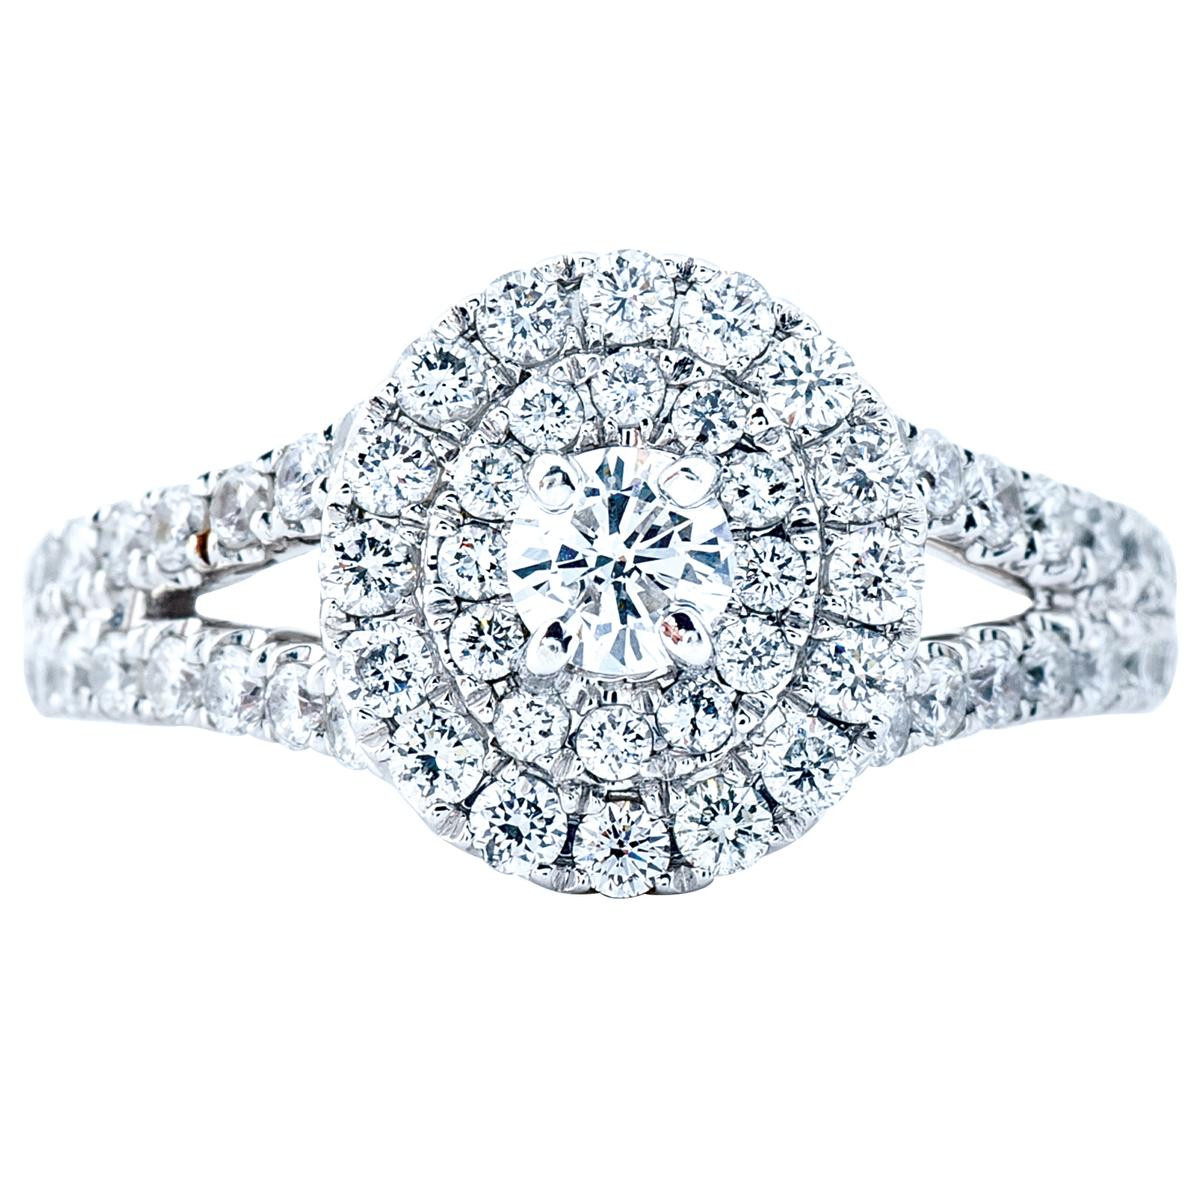 New 1.21 CTW Venetti Diamond Halo Engagement Ring